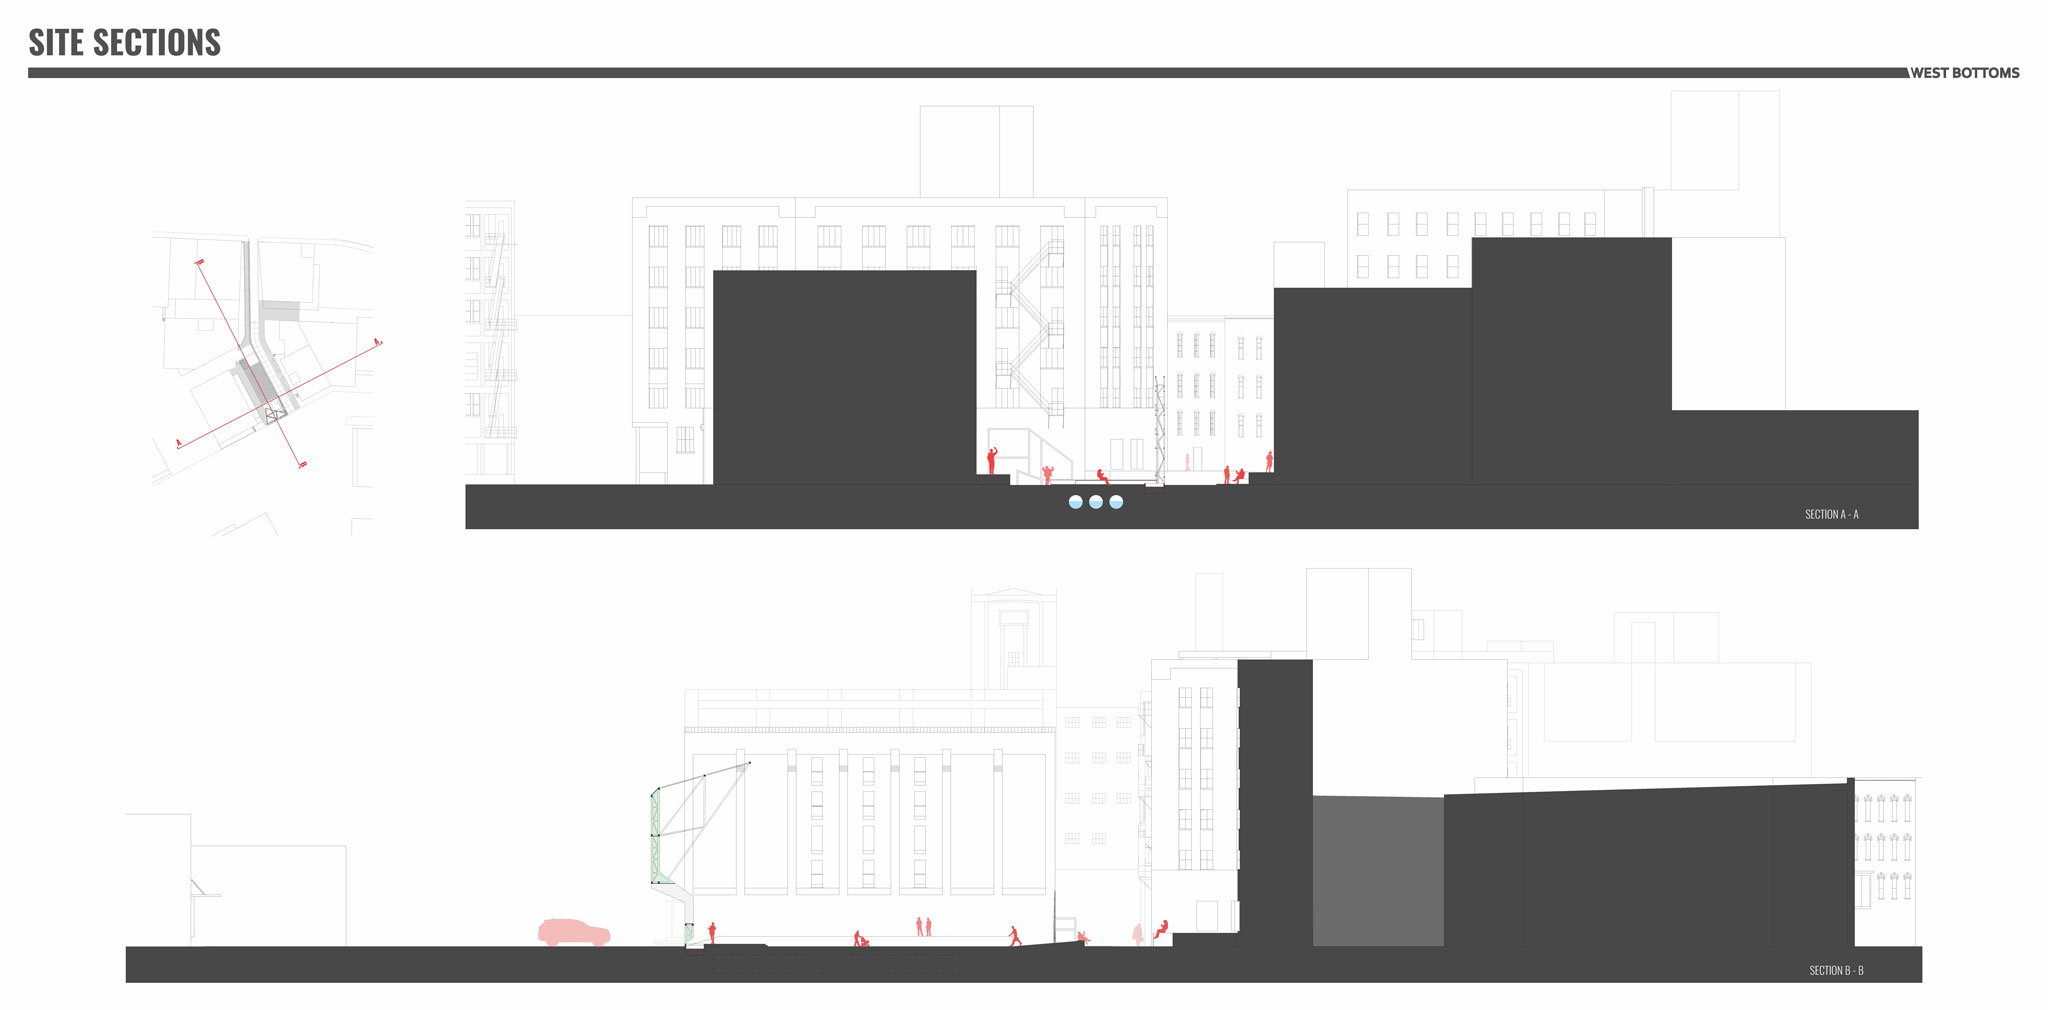 The illustration demonstrates the elements of proposed design elements along the longitudinal section of the alley.   View a pdf of this image to zoom in.